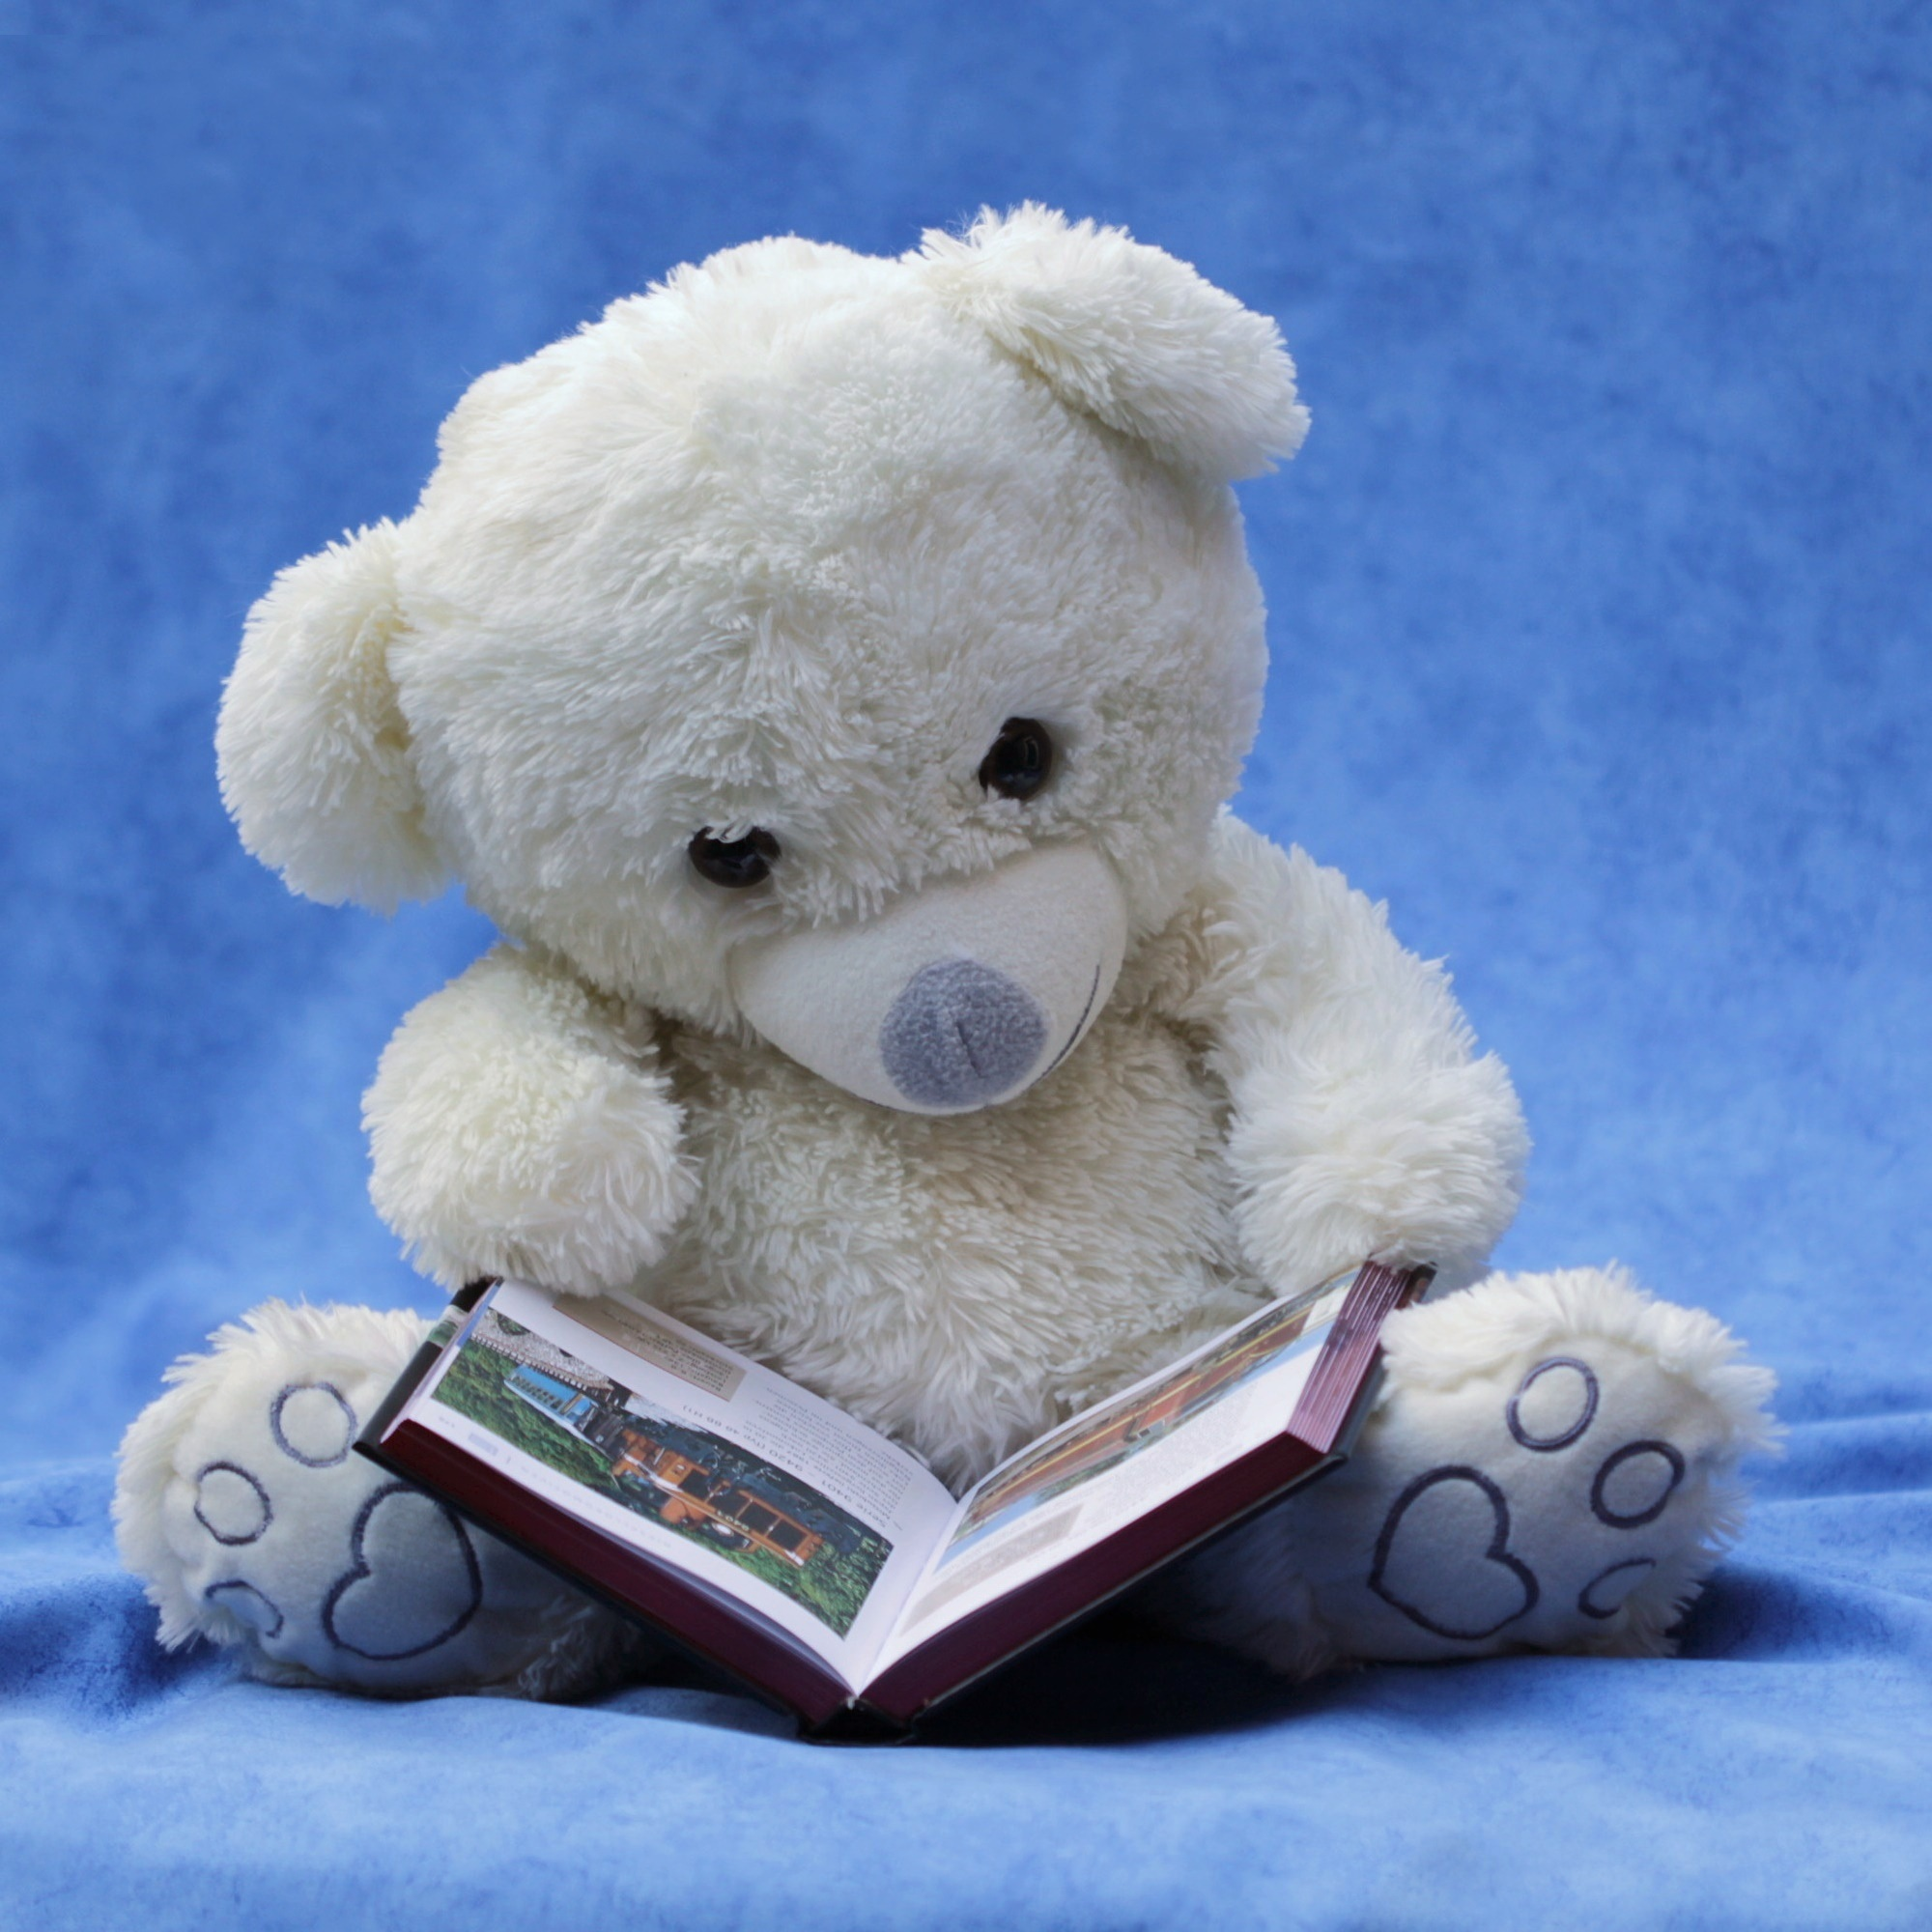 photograph of teddy bear reading